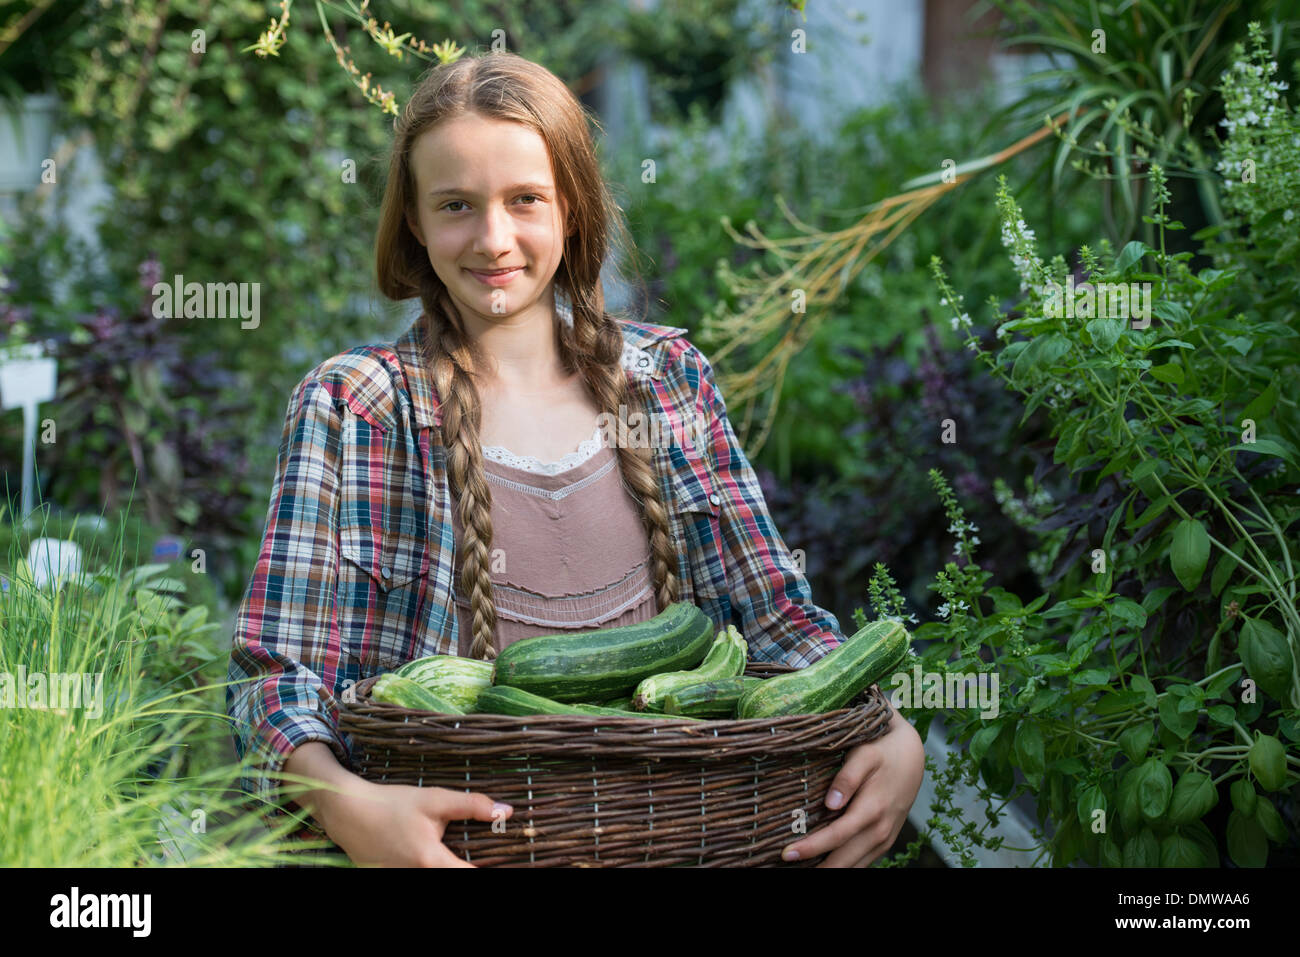 Summer on an organic farm. A girl holding a basket of fresh marrows. - Stock Image